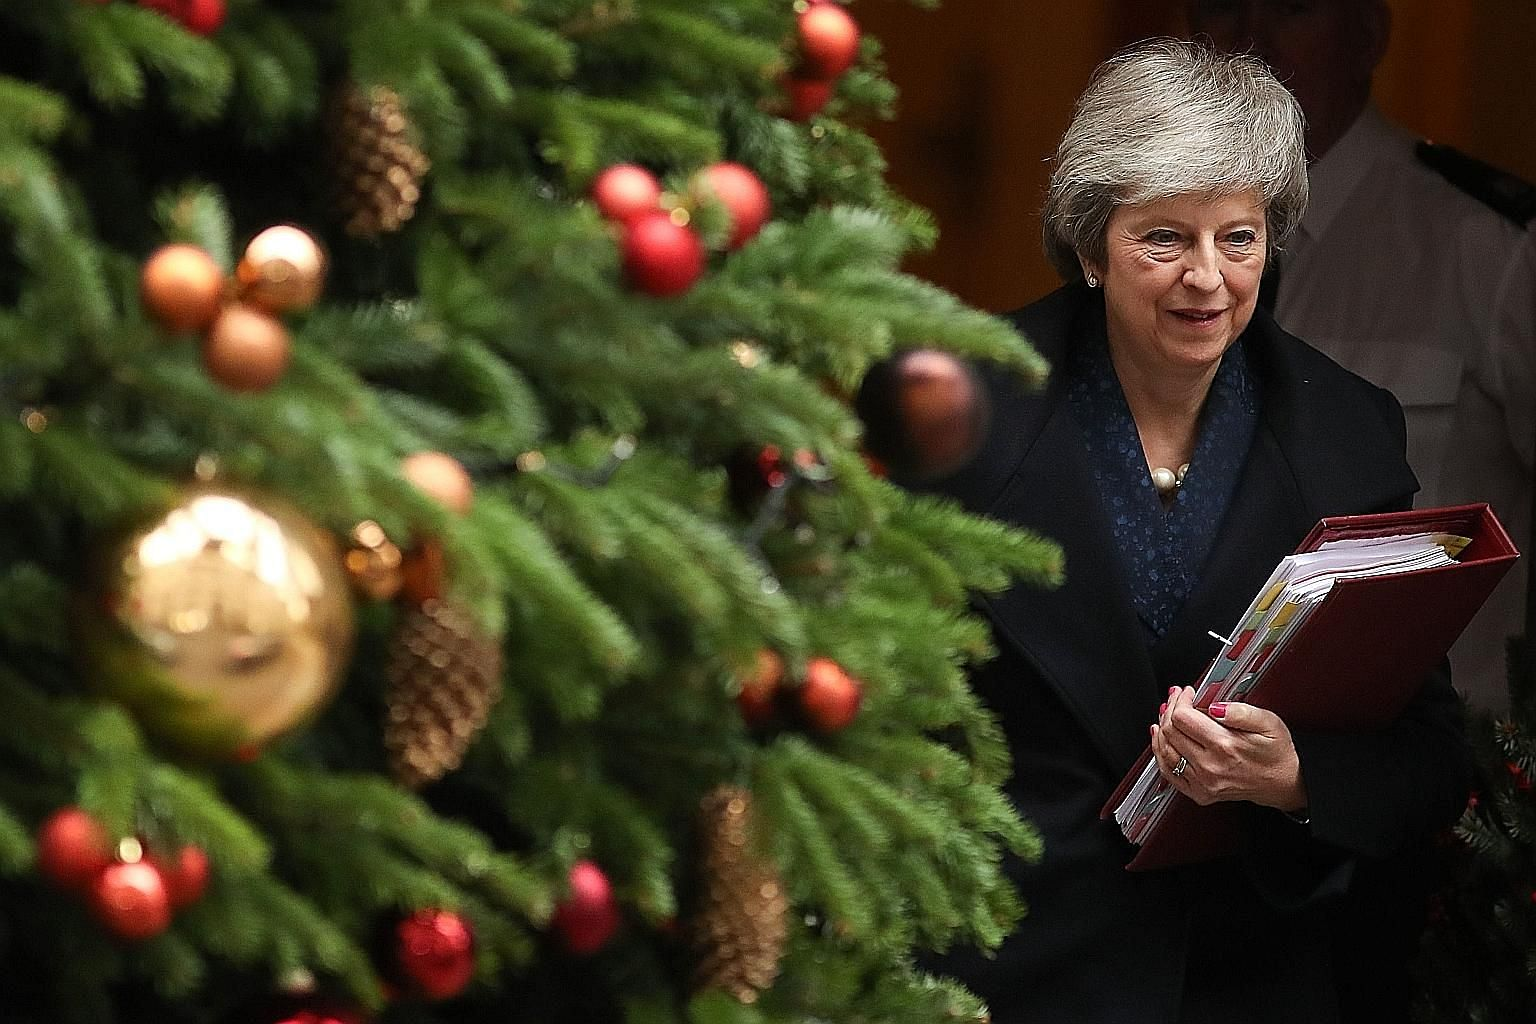 British Prime Minister Theresa May leaving 10 Downing Street on Wednesday. According to the writer, what doomed the Brexiters' arguments against Mrs May's leadership was the growing realisation in recent months that they had no plan of their own.